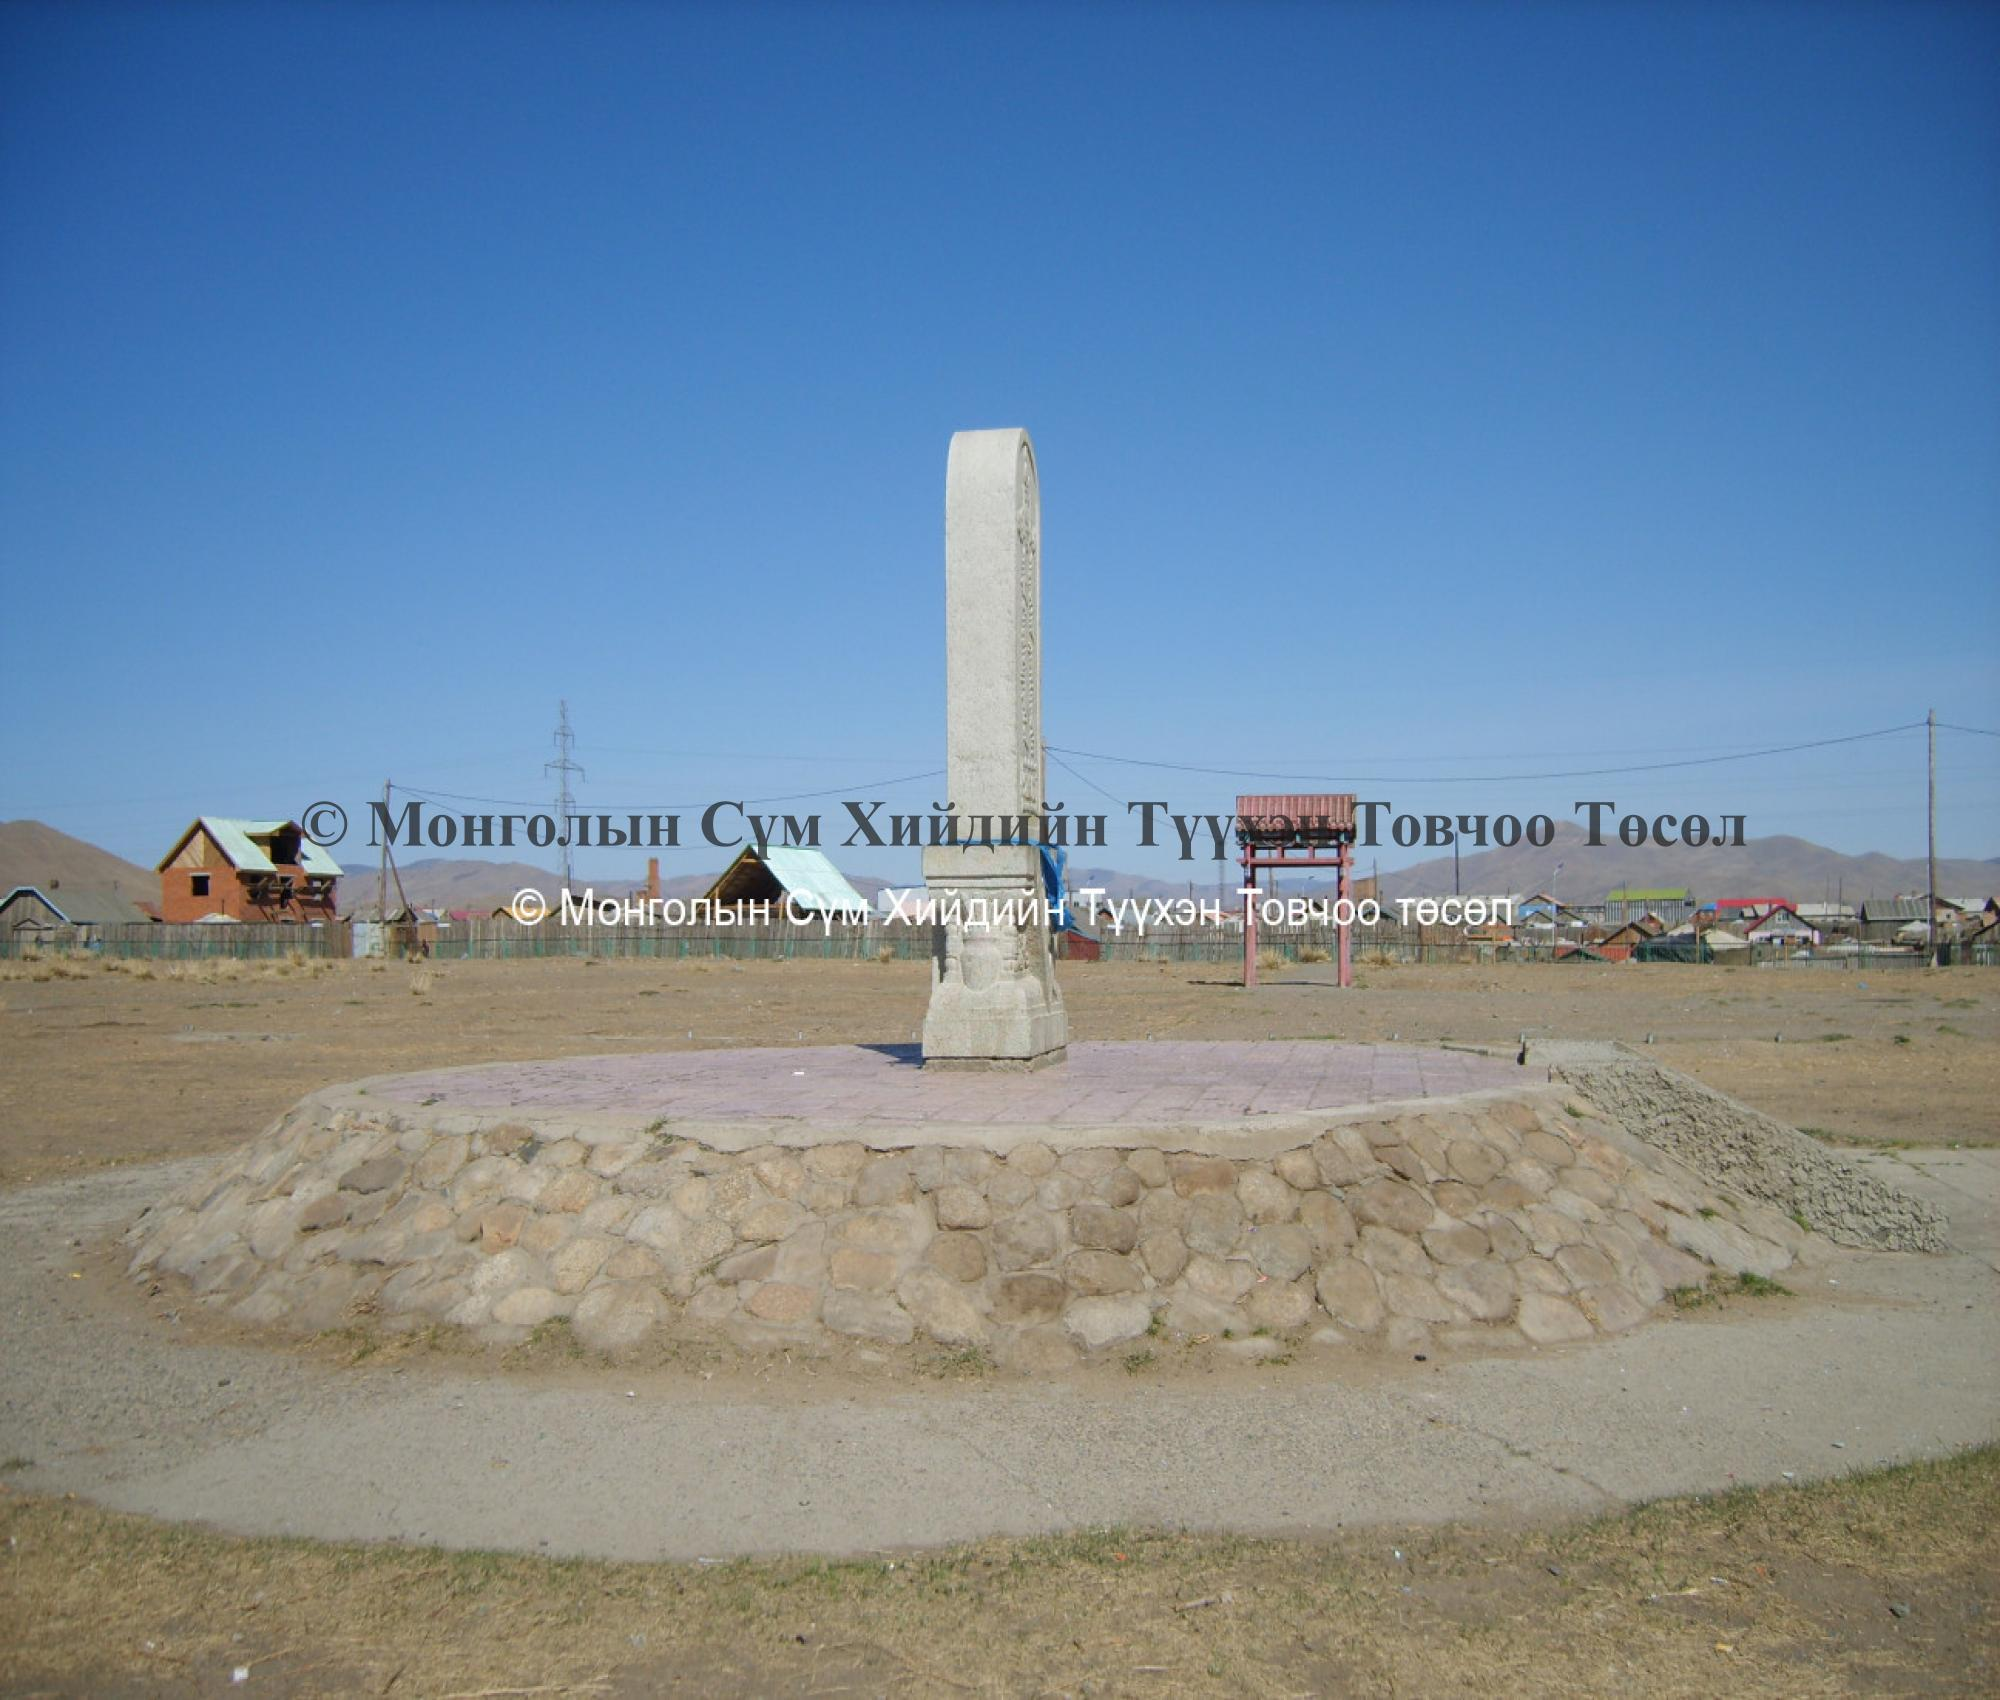 Memorial Place of D. Sükhbaatar in the East of Tar